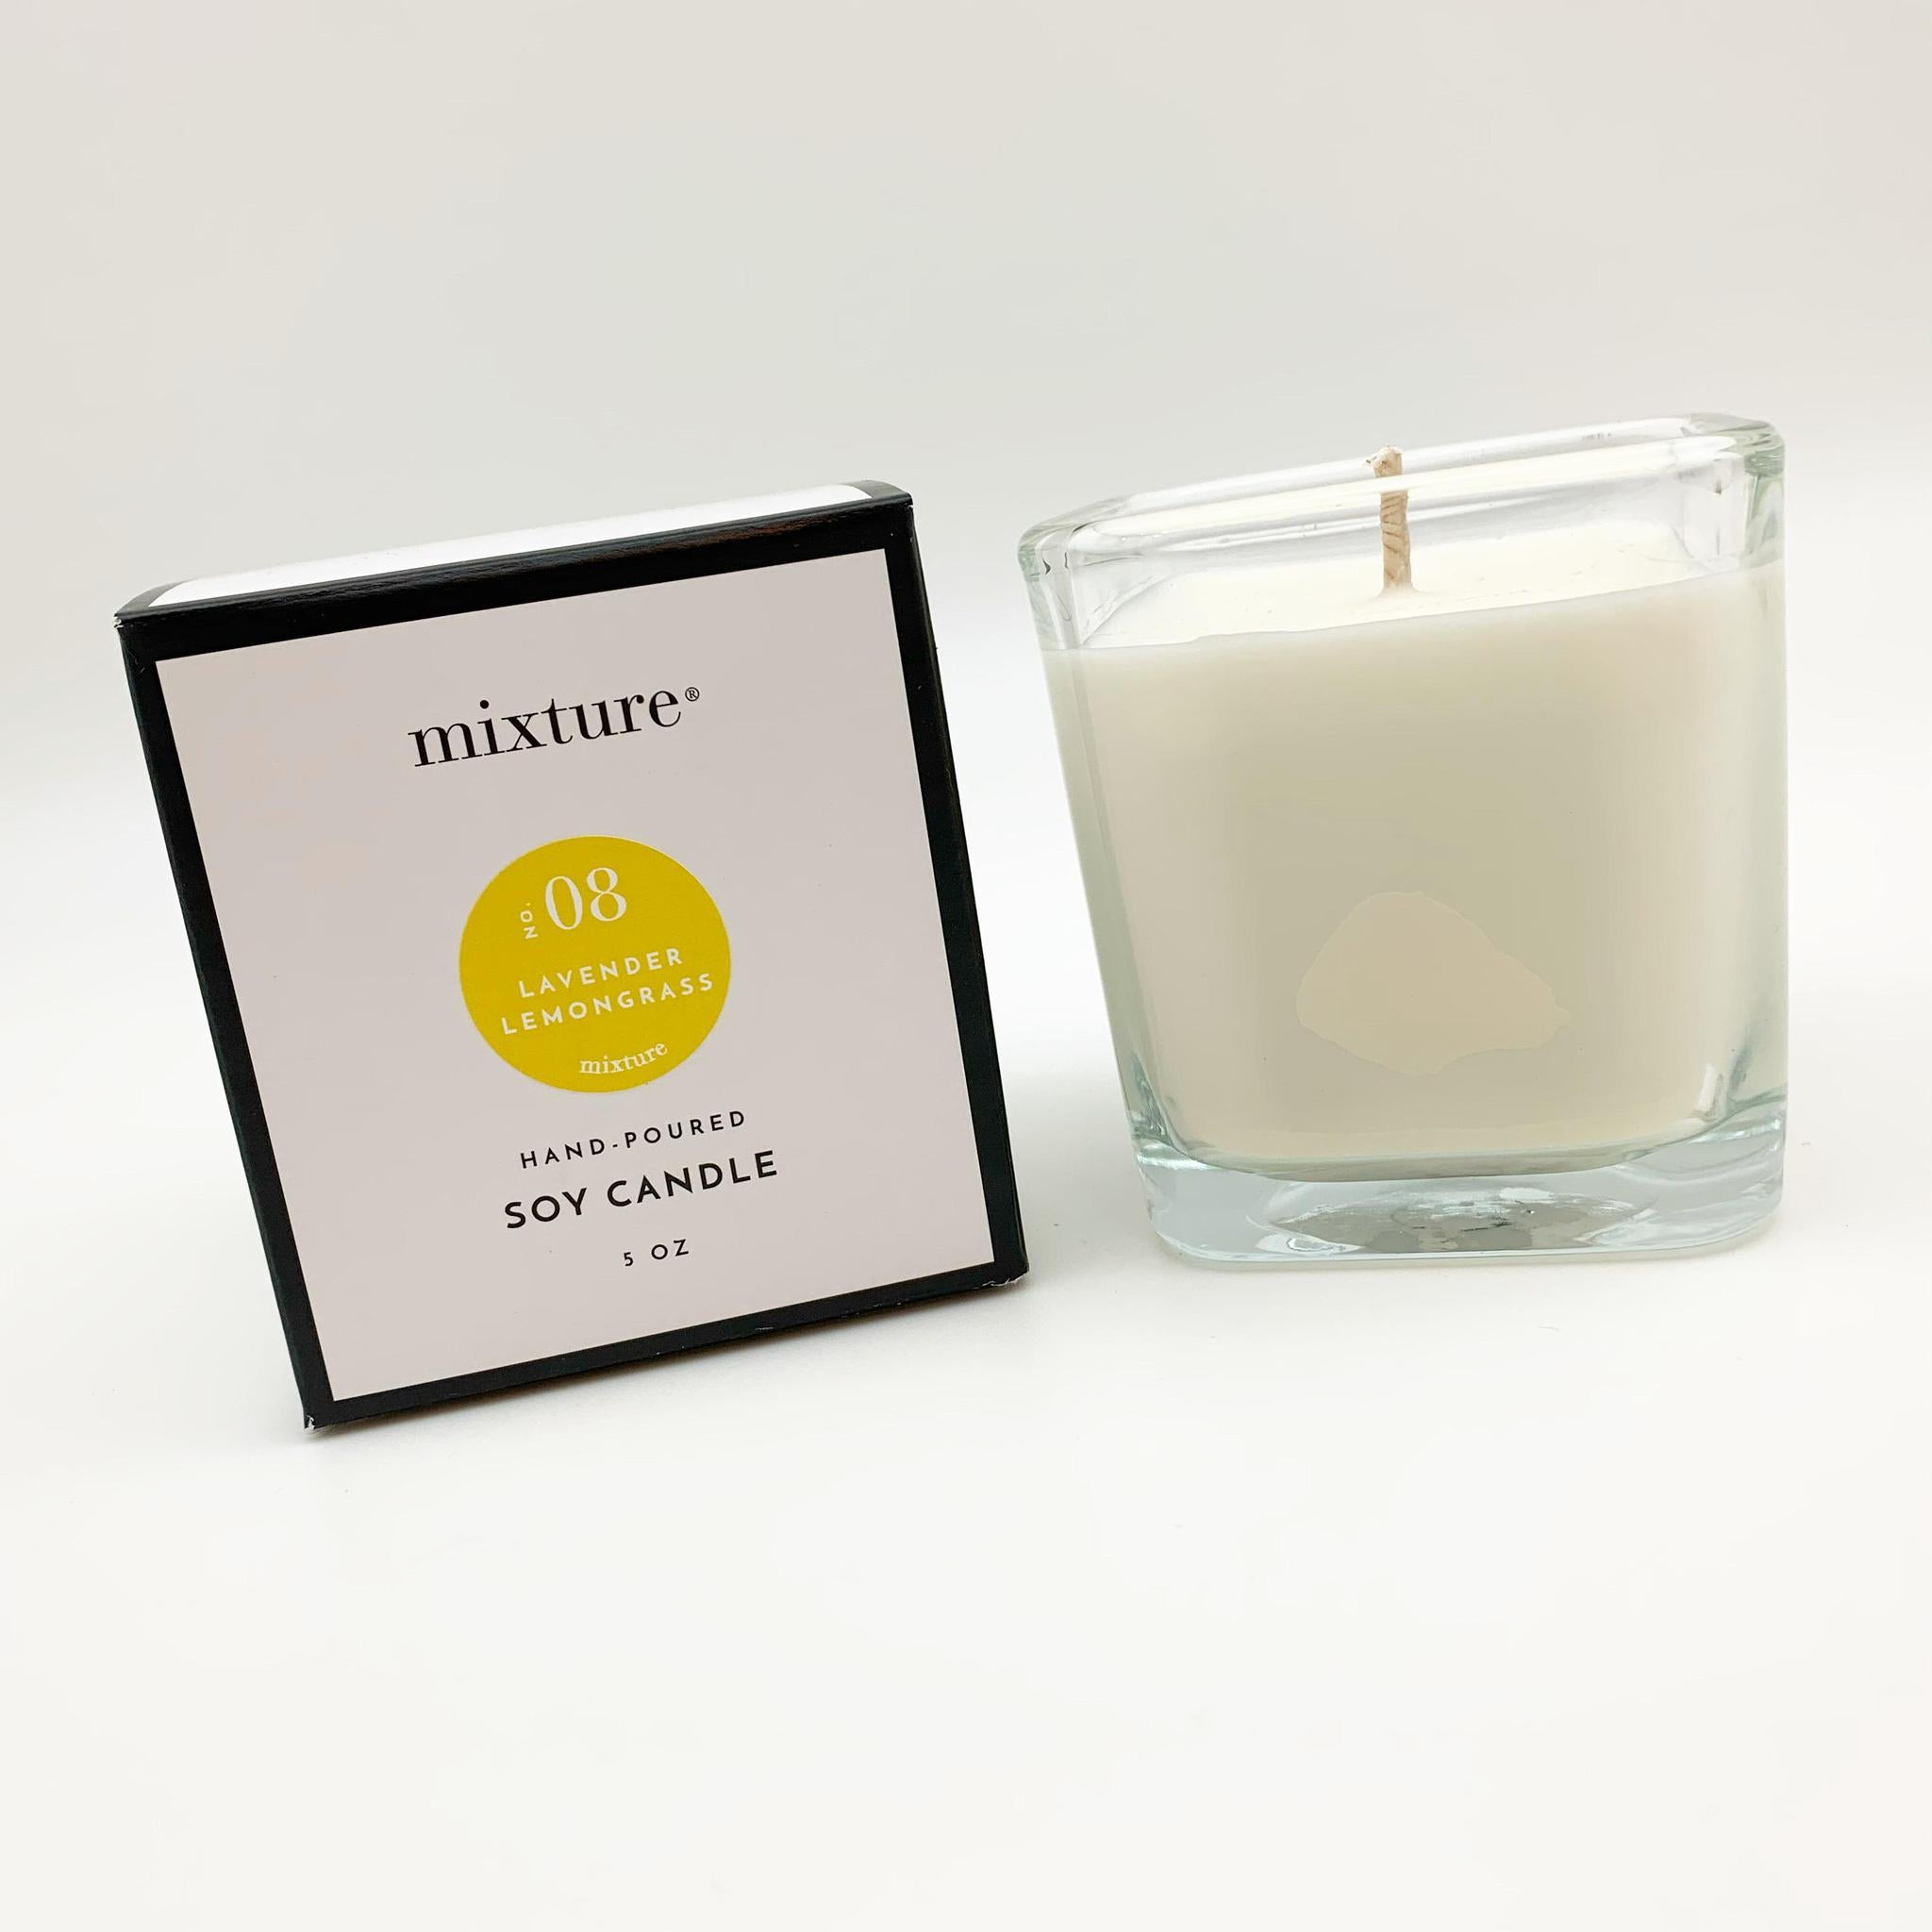 Candle - Lavender Lemongrass - 5 oz